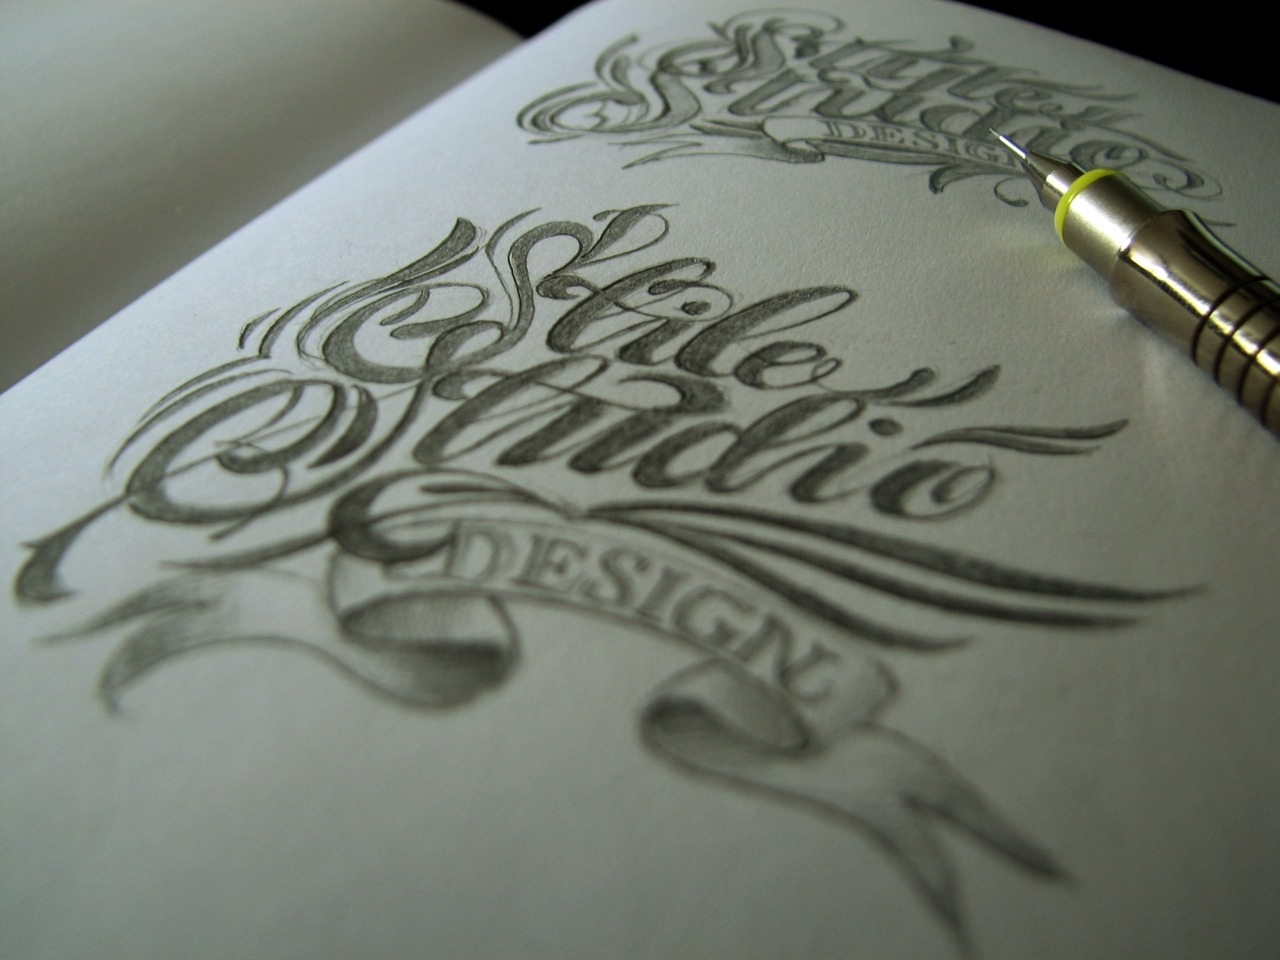 Calligraphi.ca - Stile Studio logo sketch - pencil on paper - Theosone